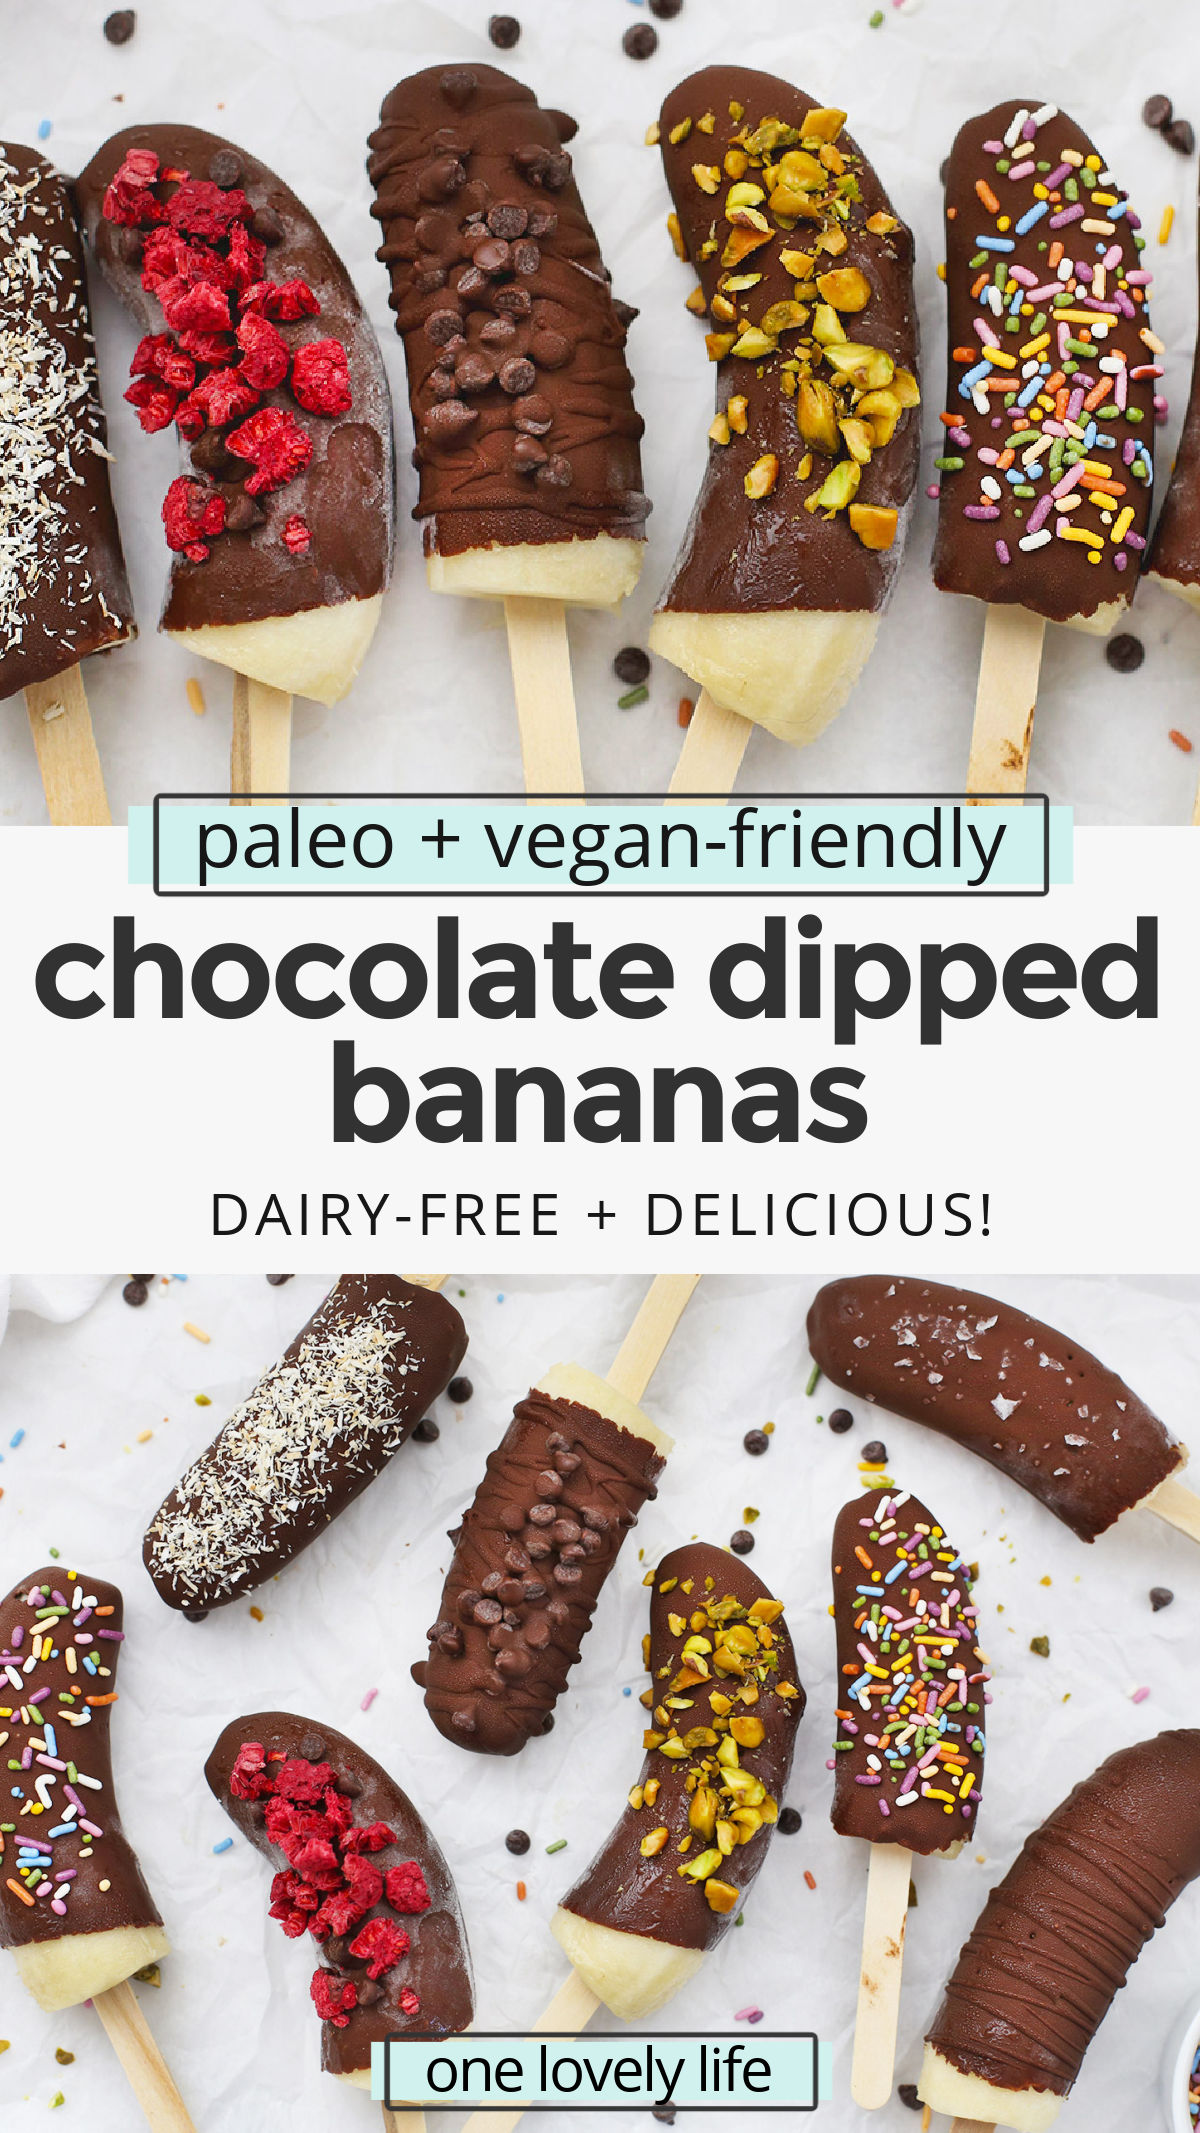 Healthy Chocolate Covered Bananas - These chocolate-dipped bananas are a delicious healthy snack or healthy dessert. Plus, they're gluten-free, vegan & paleo! // Chocolate Covered Banana Pops // Frozen Chocolate Bananas #paleo #healthytreat #healthysnack #vegan #bananas #chocolate